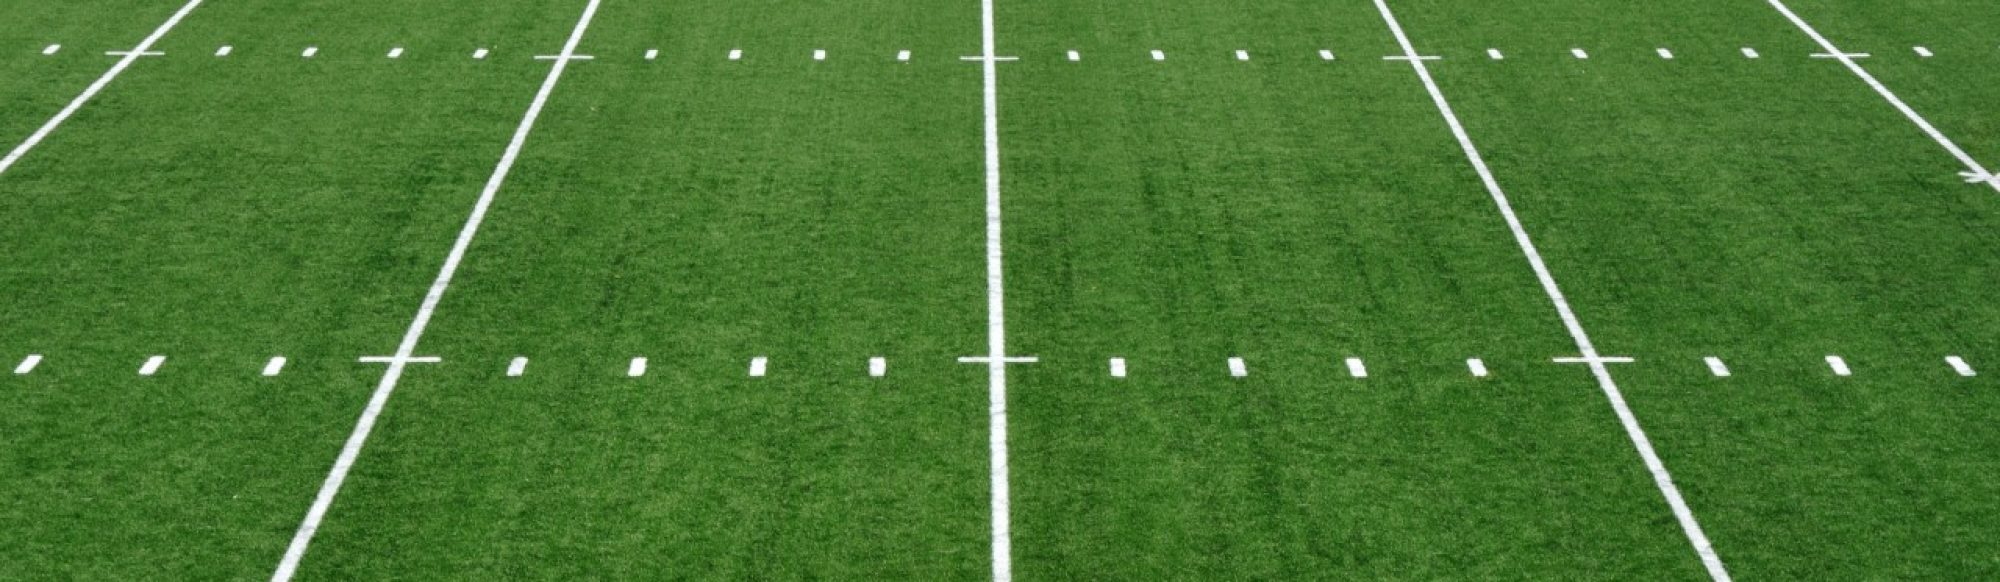 cropped-Football-field-clipart-6.jpg